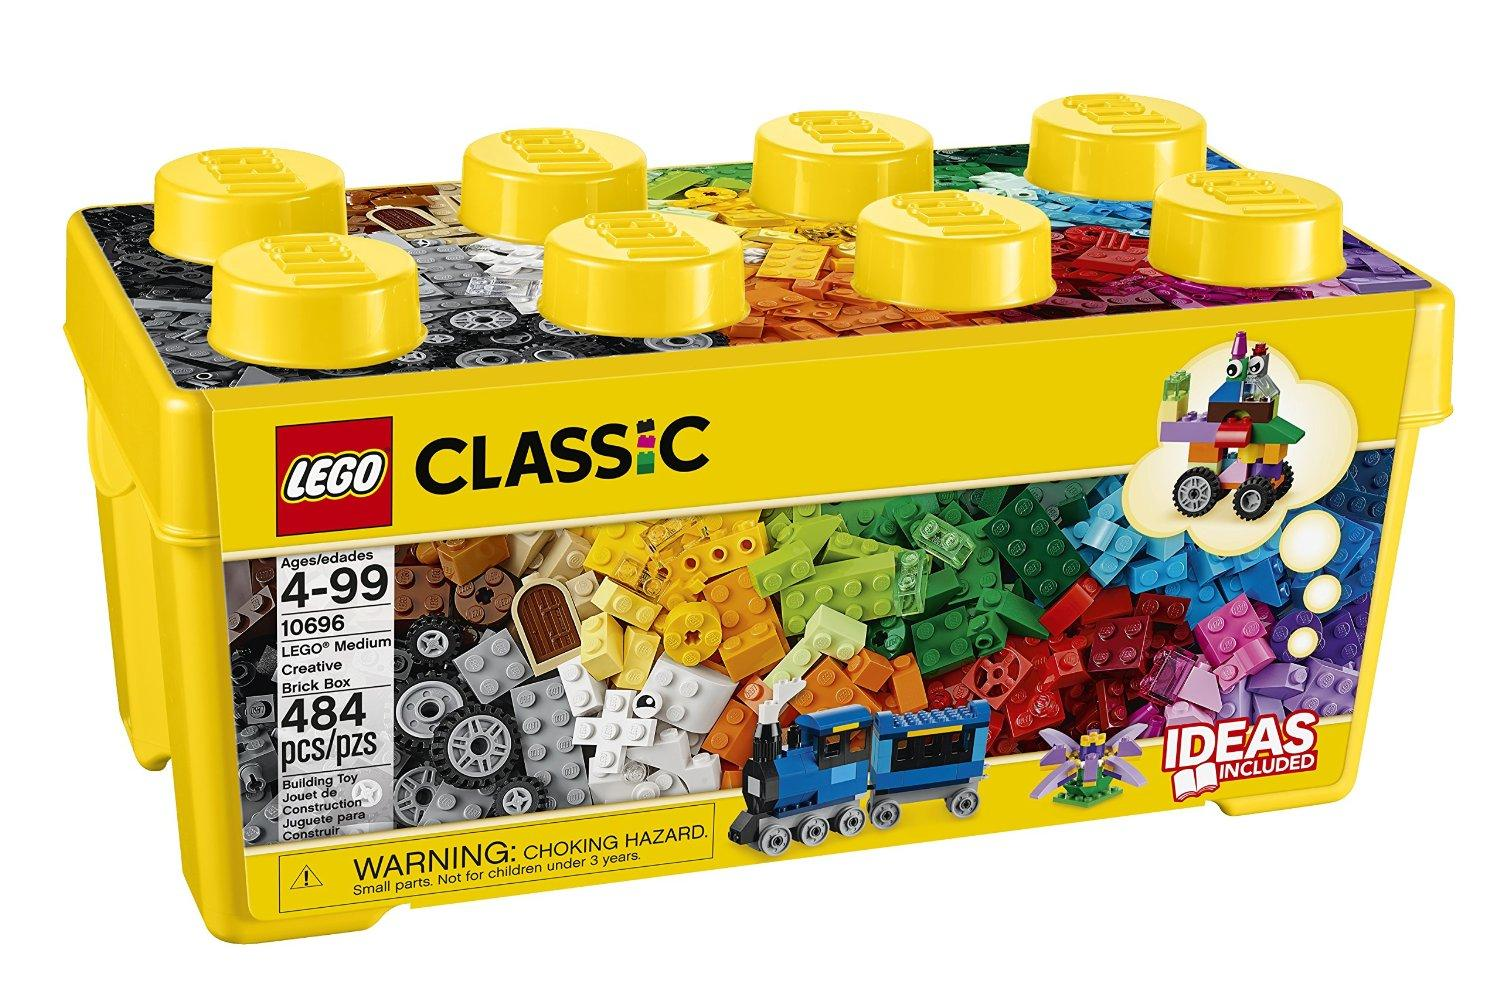 $25.53 LEGO Classic Medium Creative Brick Box @ Amazon